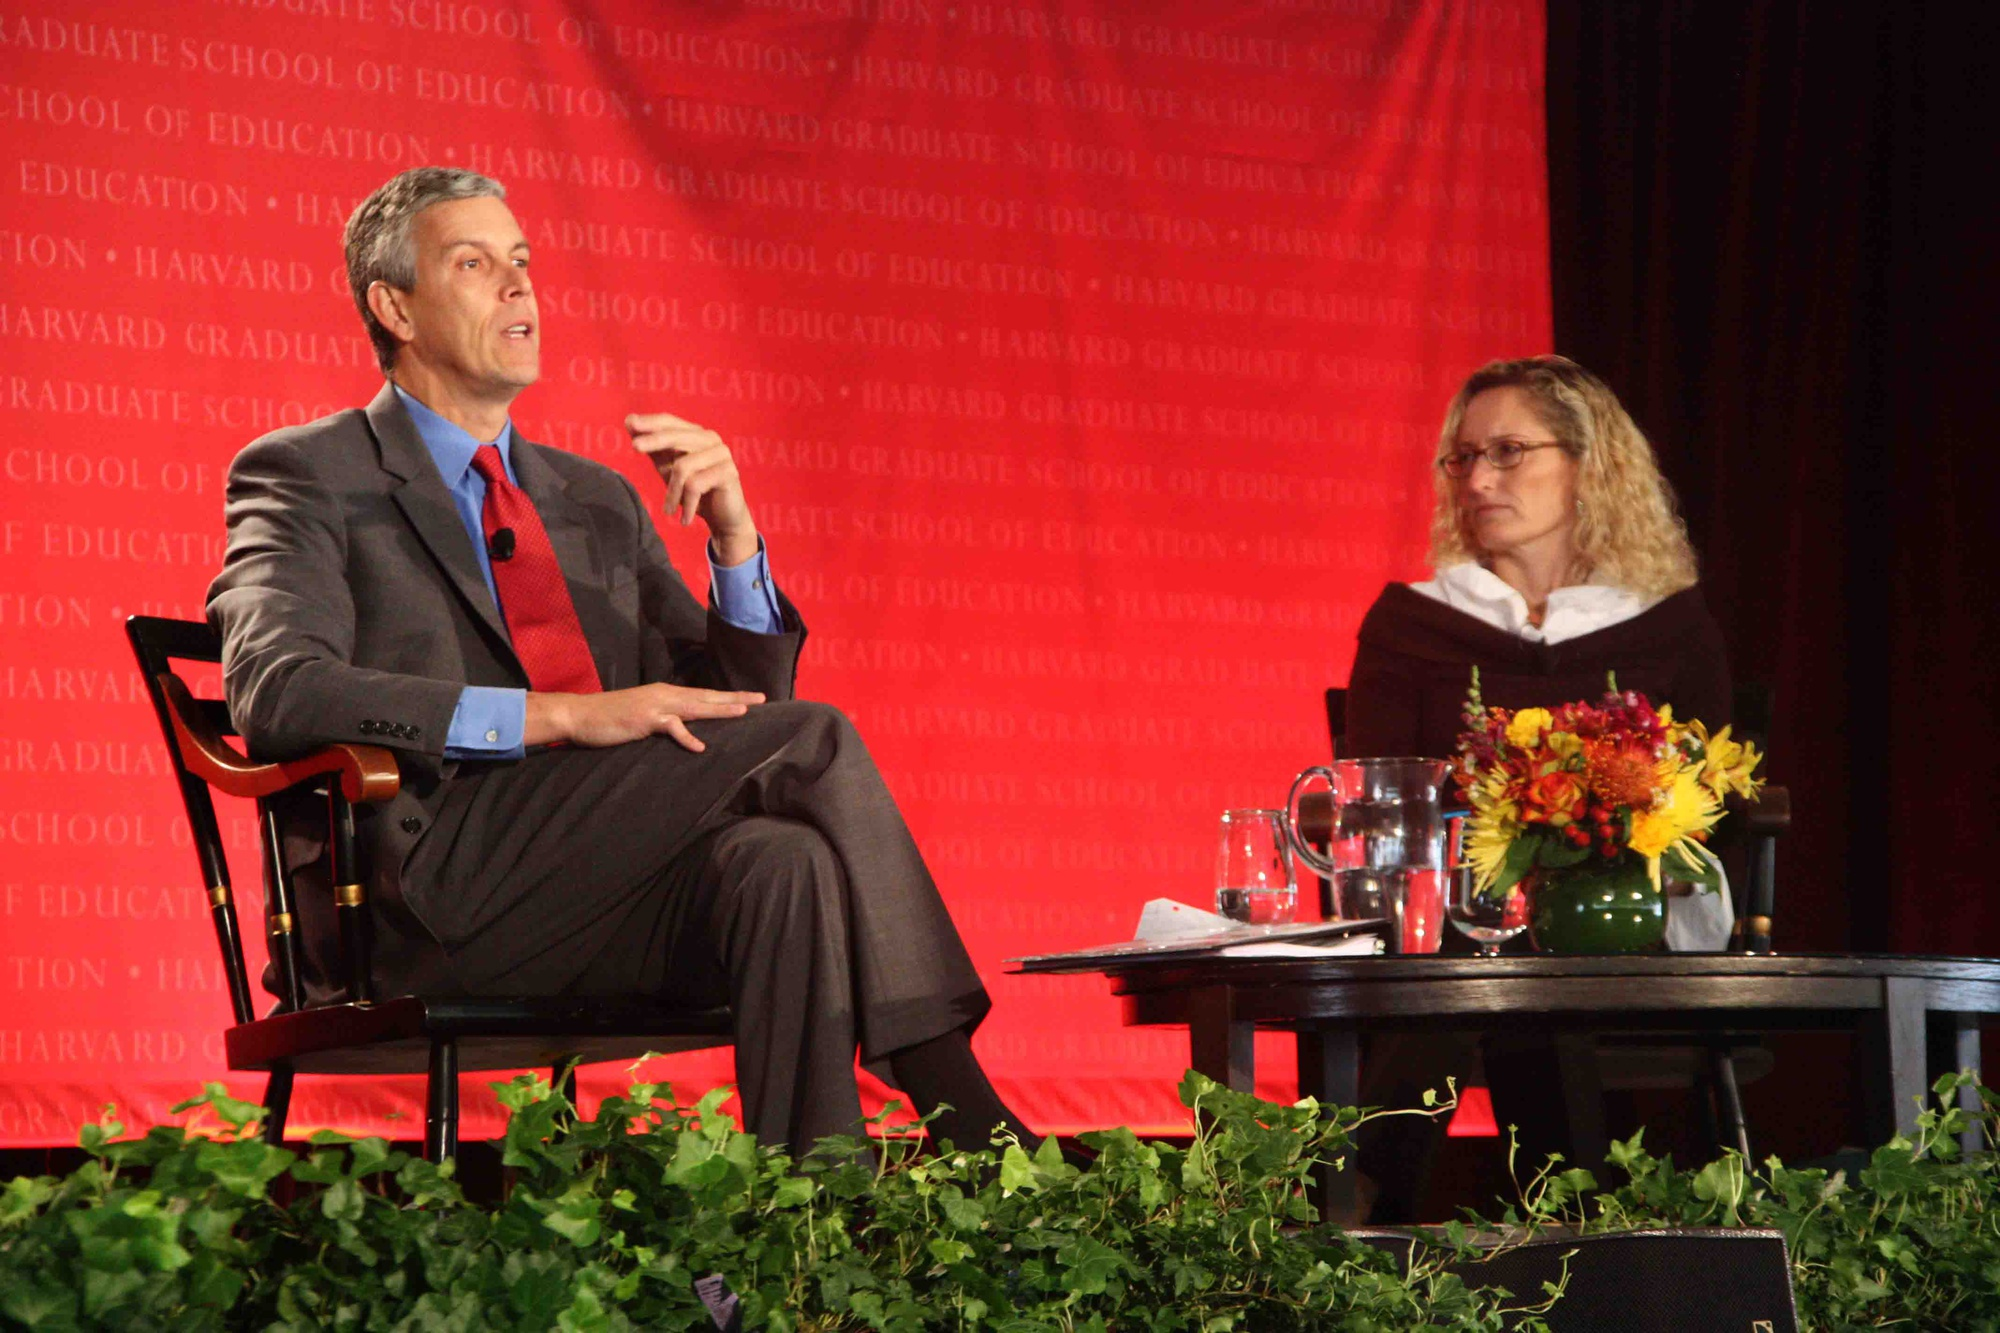 U.S. Secretary of Education Arne S. Duncan '86 speaks with professor Monica Higgins about the Common Core testing standards during the Graduate School of Education's capital campaign launch Friday.